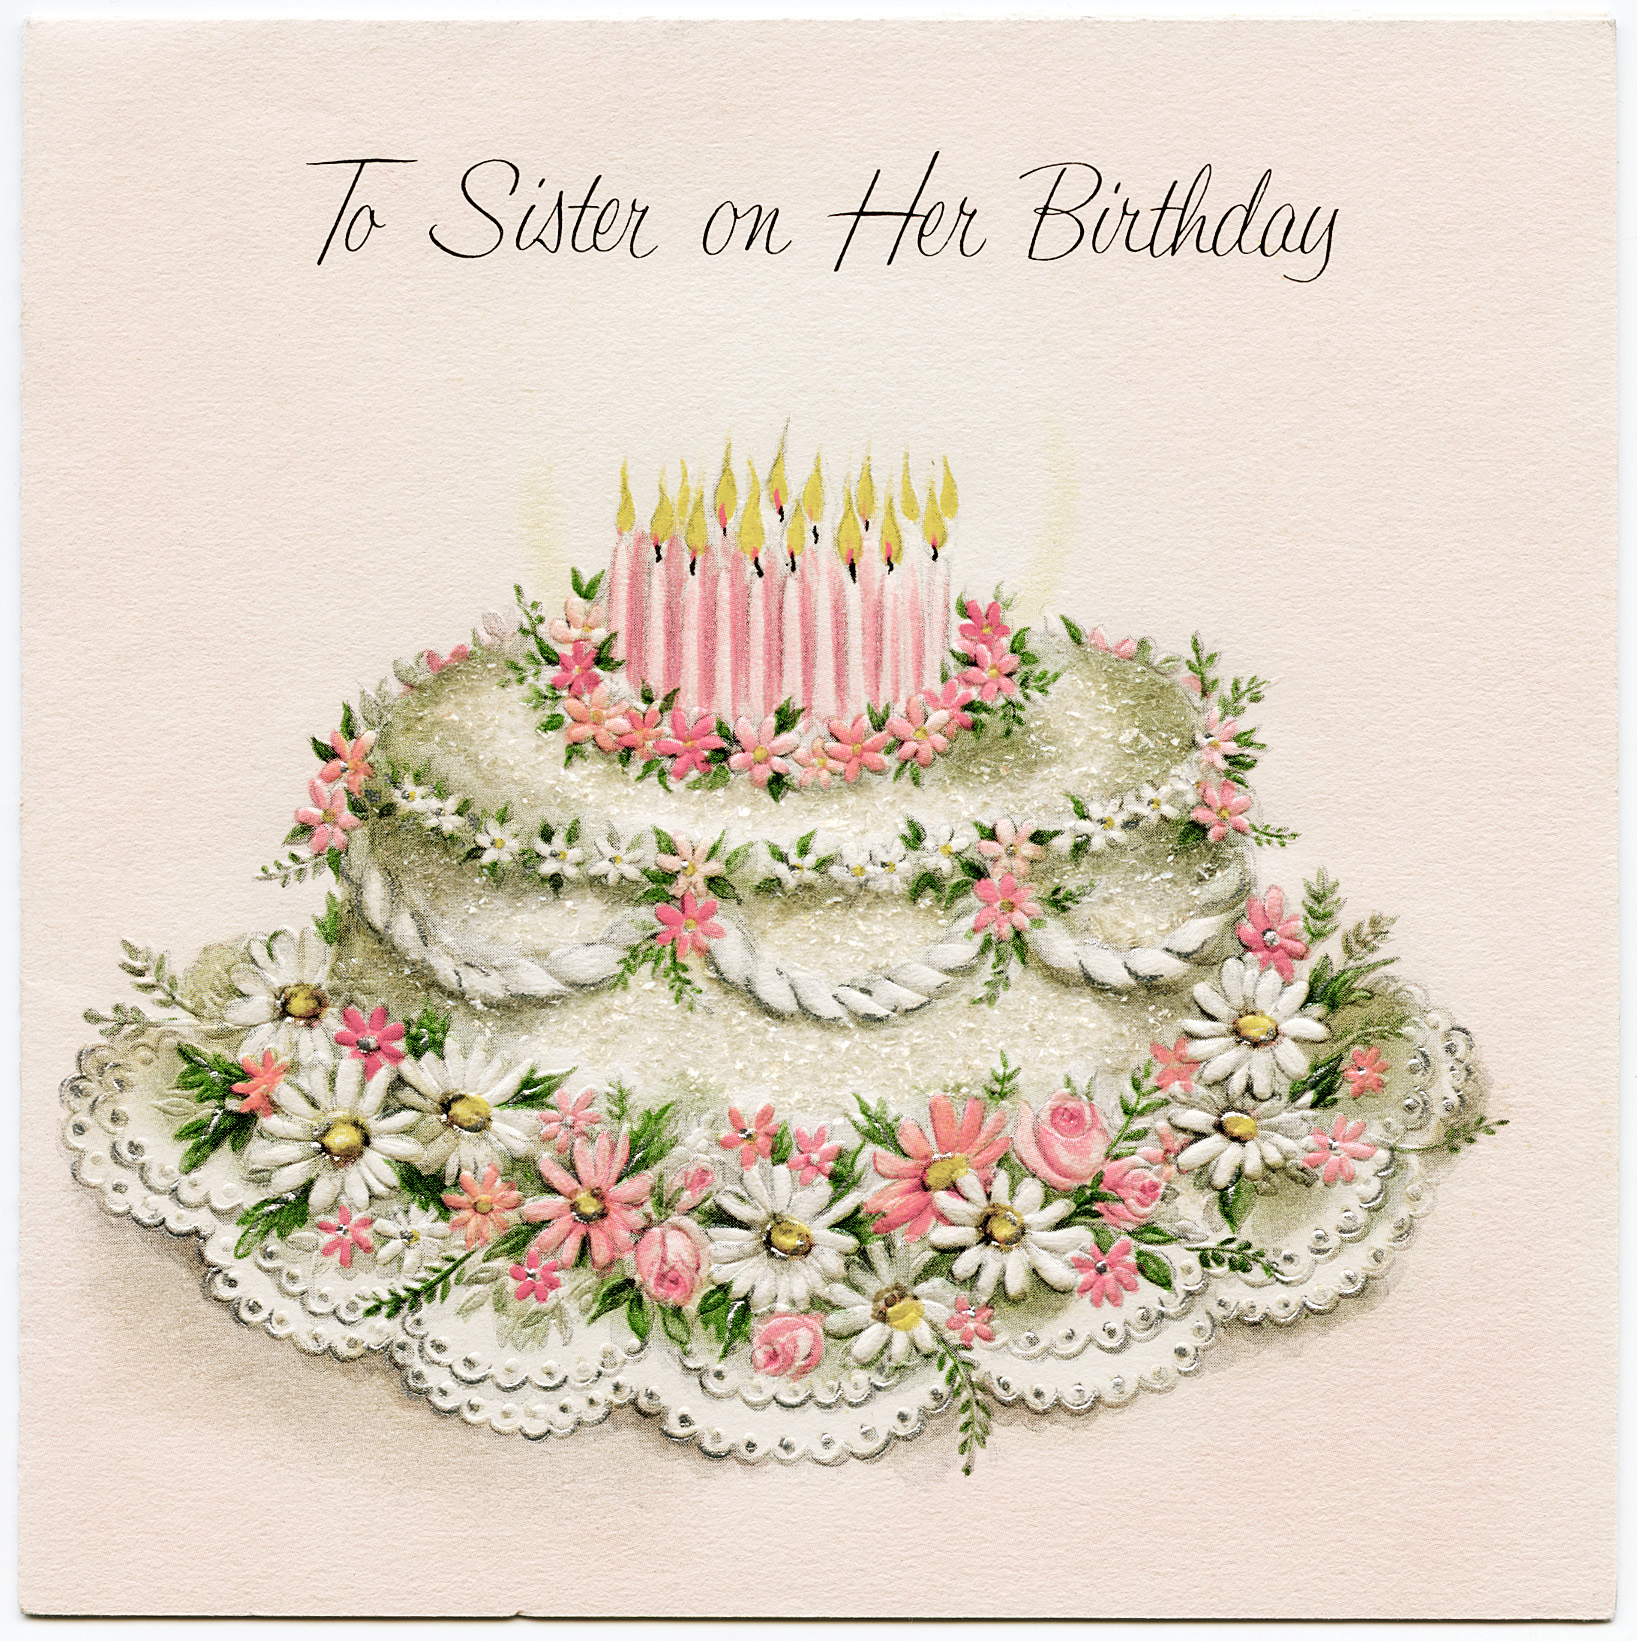 Birthday | Free Vintage Illustrations